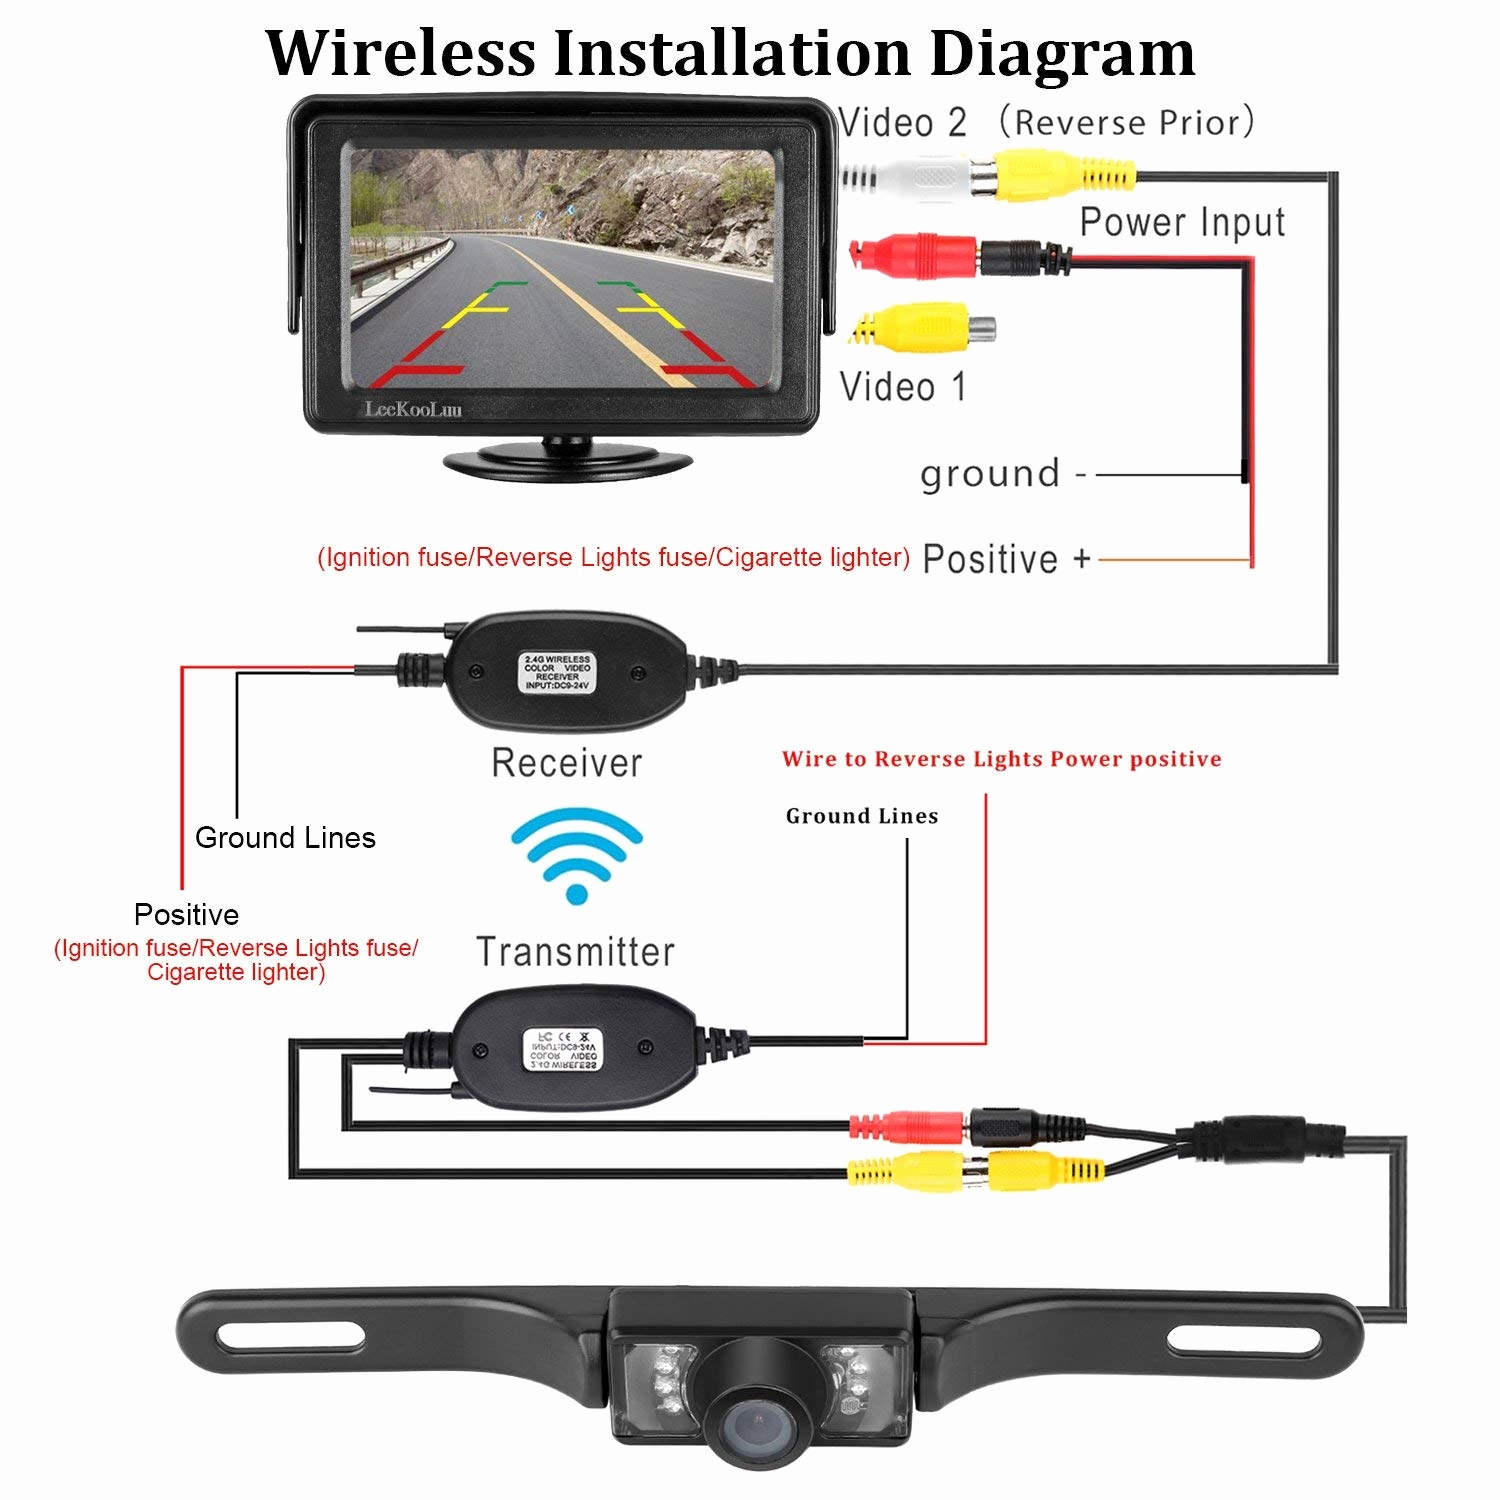 Tft Backup Camera Wiring Diagram | Manual E-Books - Leekooluu Backup Camera Wiring Diagram